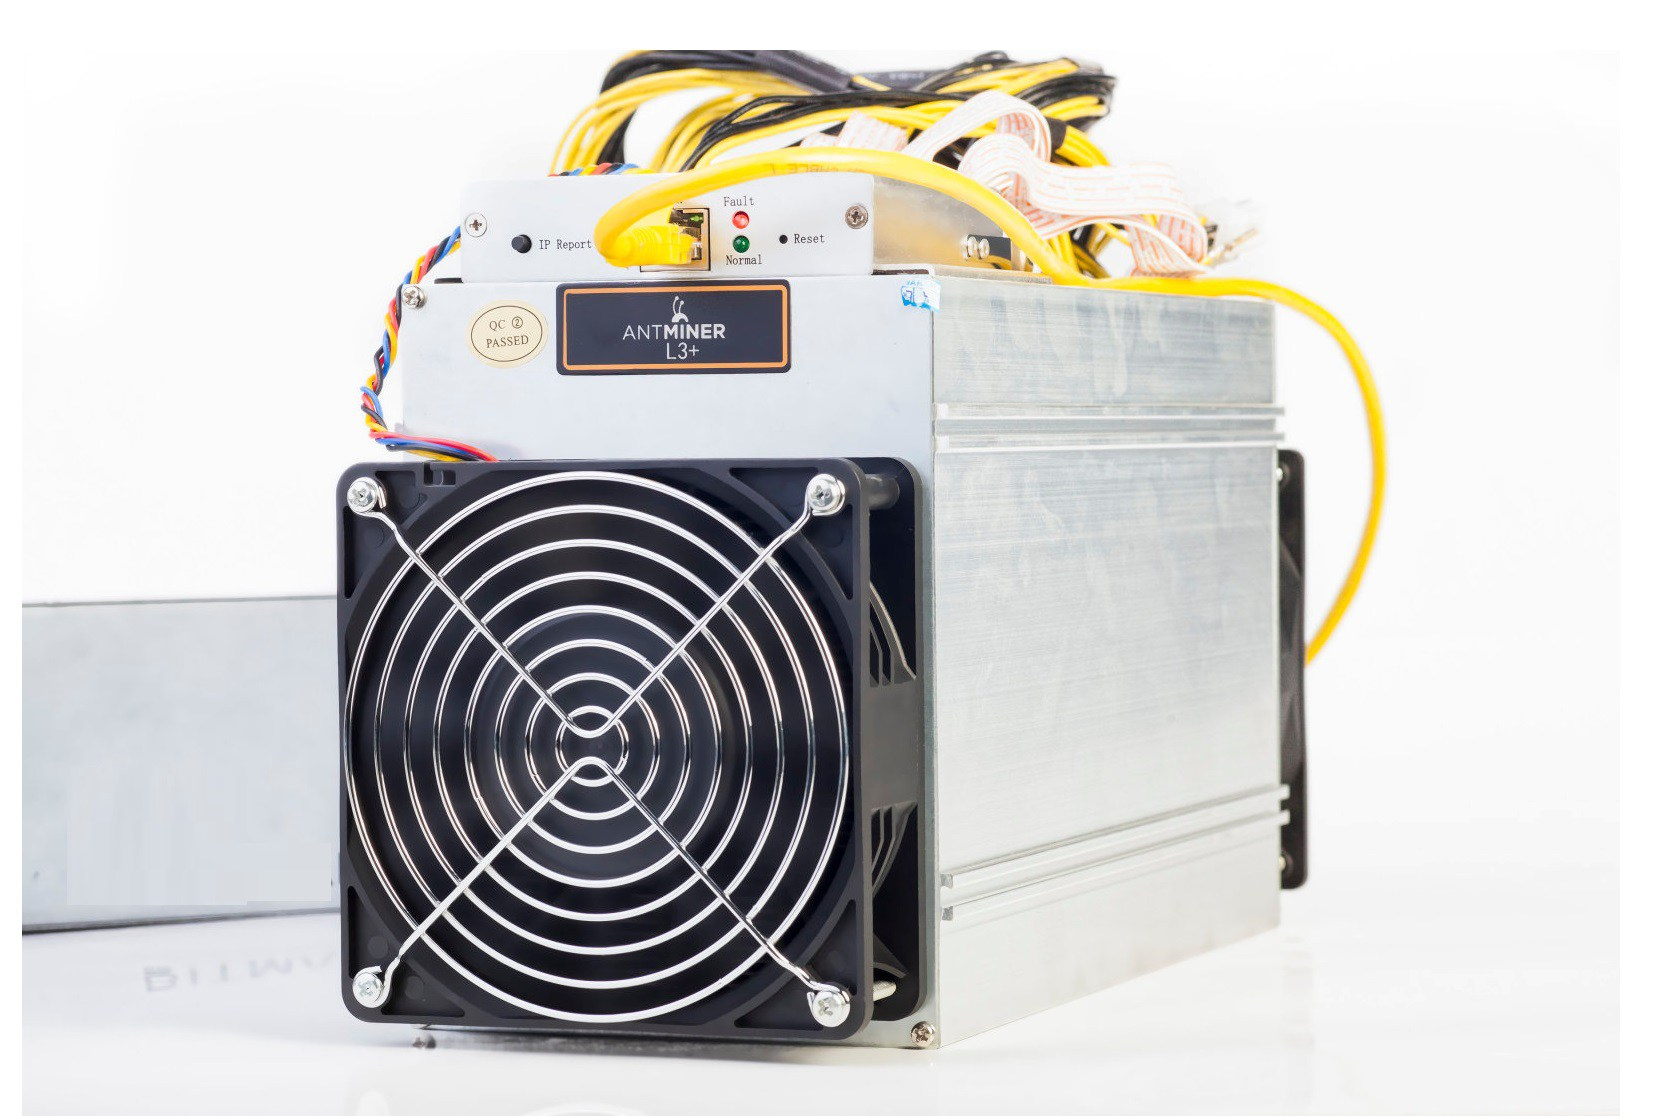 AntMiner L3+ ~504MH/S @ 1.6W/MH ASIC Litecoin Miner With PSU